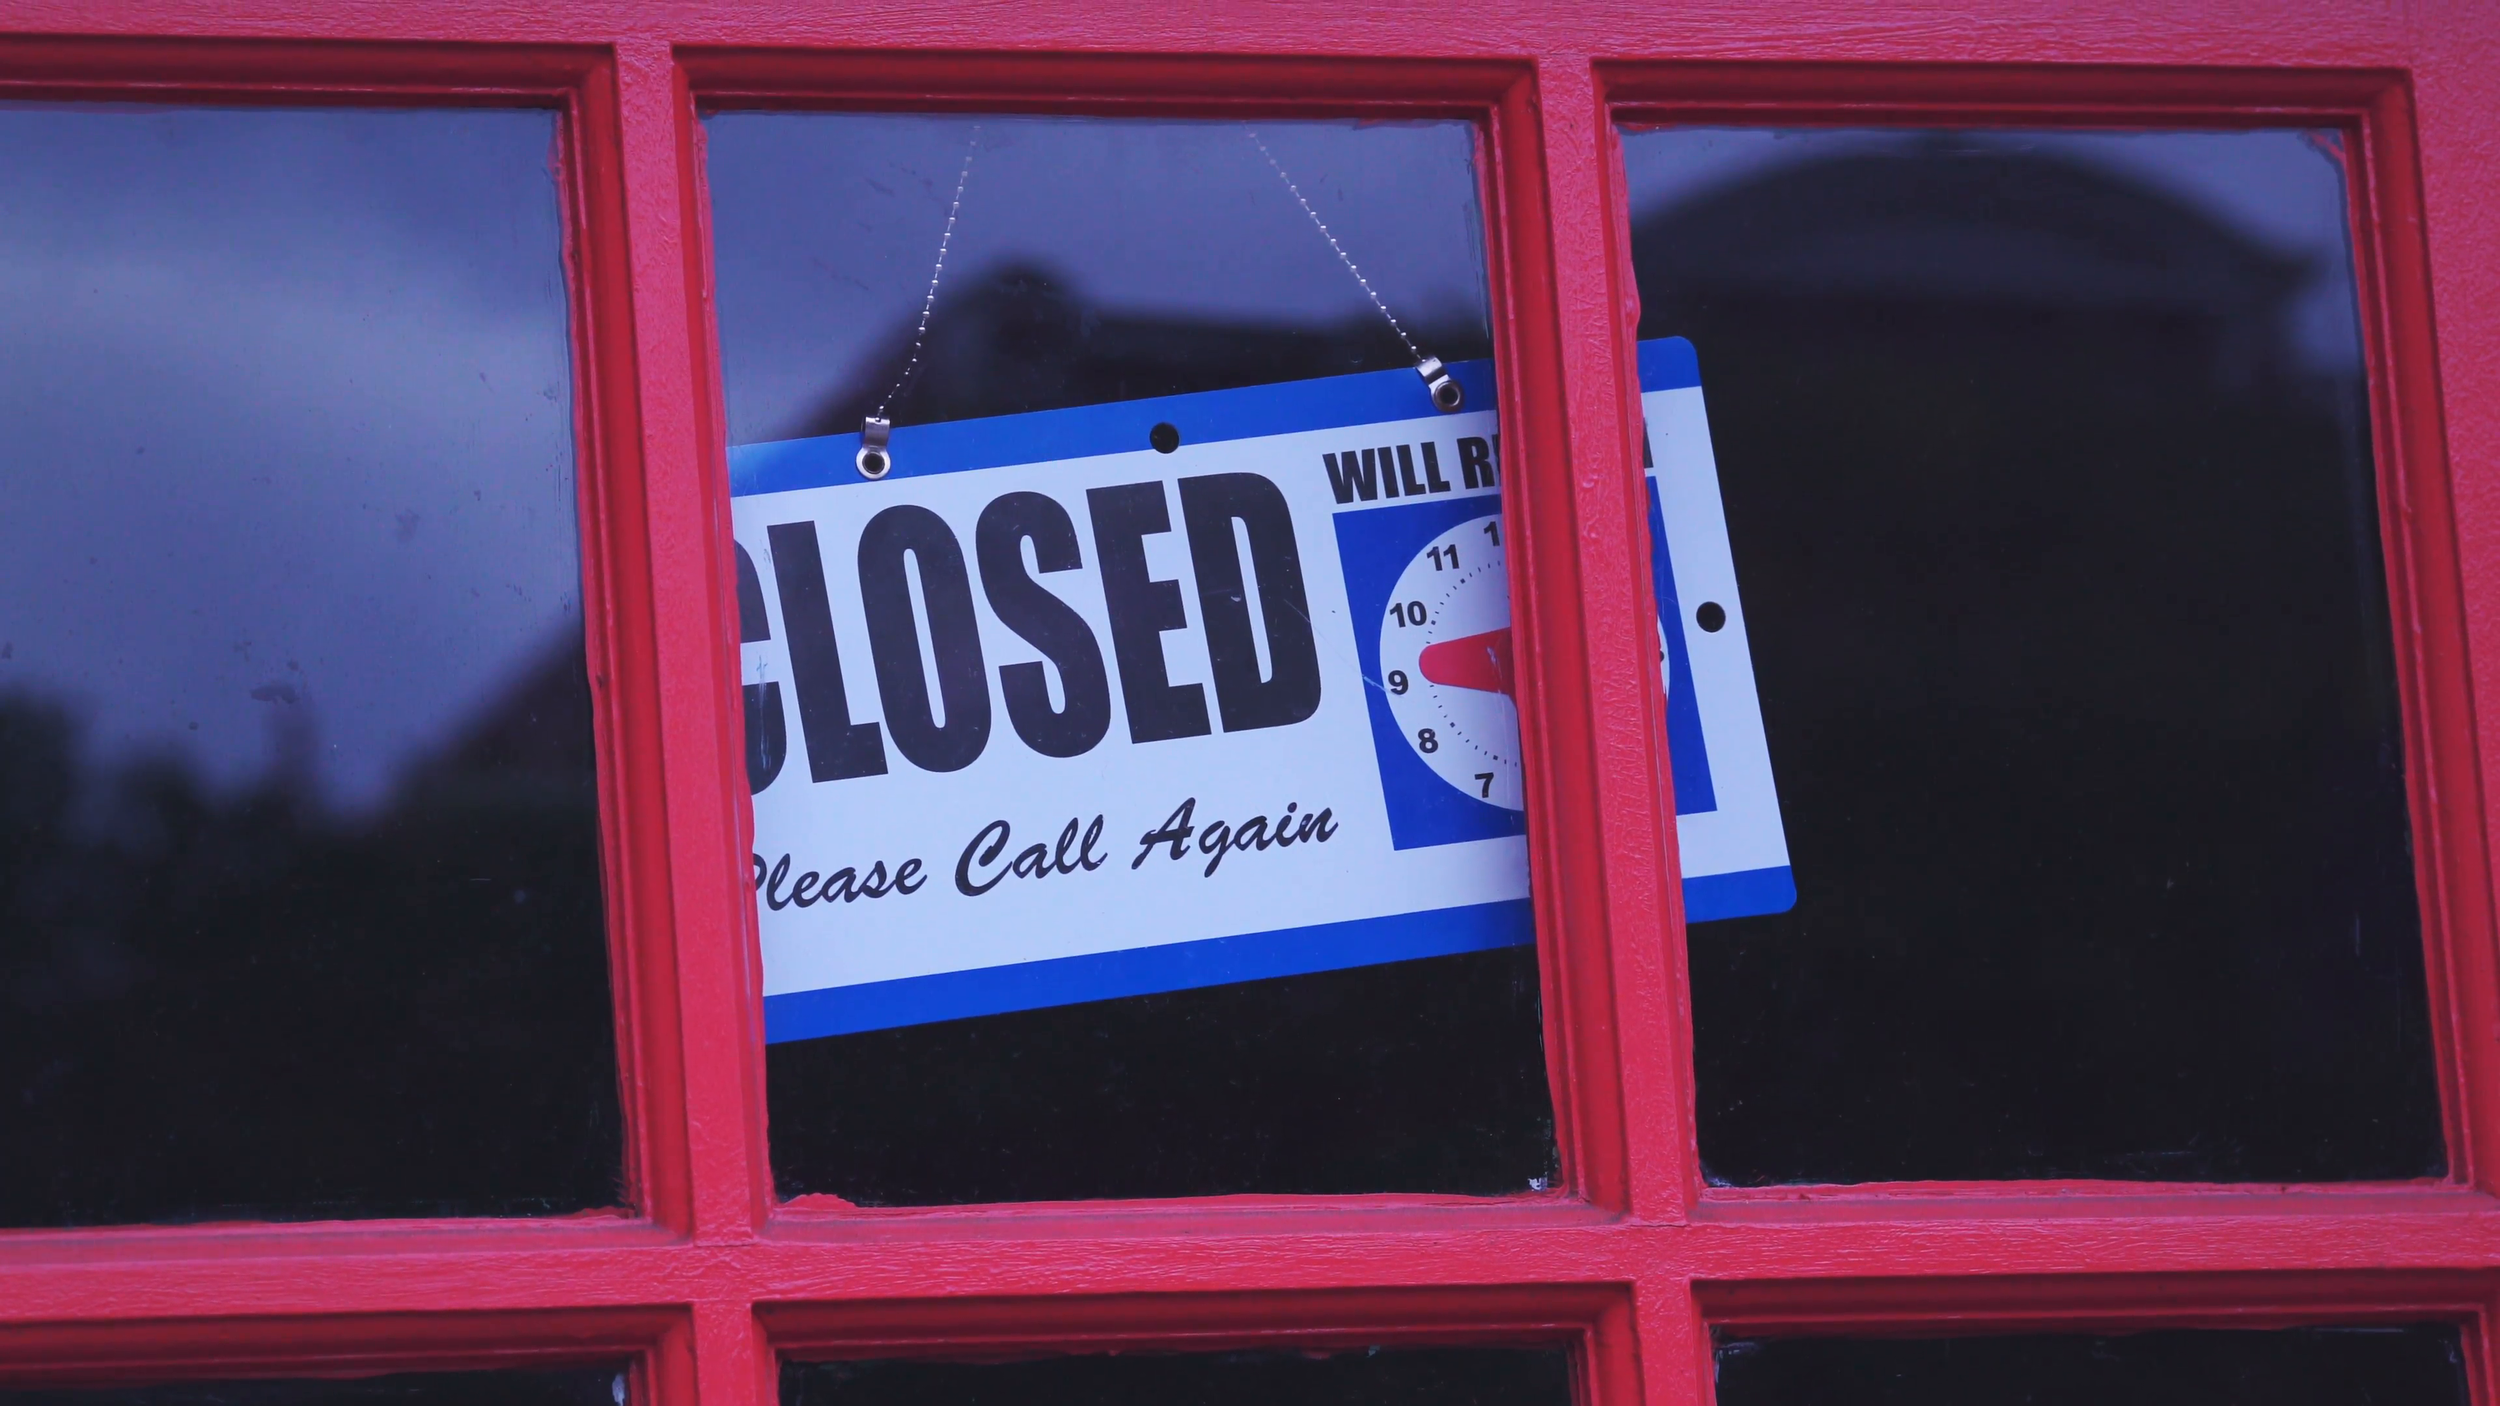 store-closed-sign-hanging-on-red-painted-door_4ypdq41sl__F0000.png